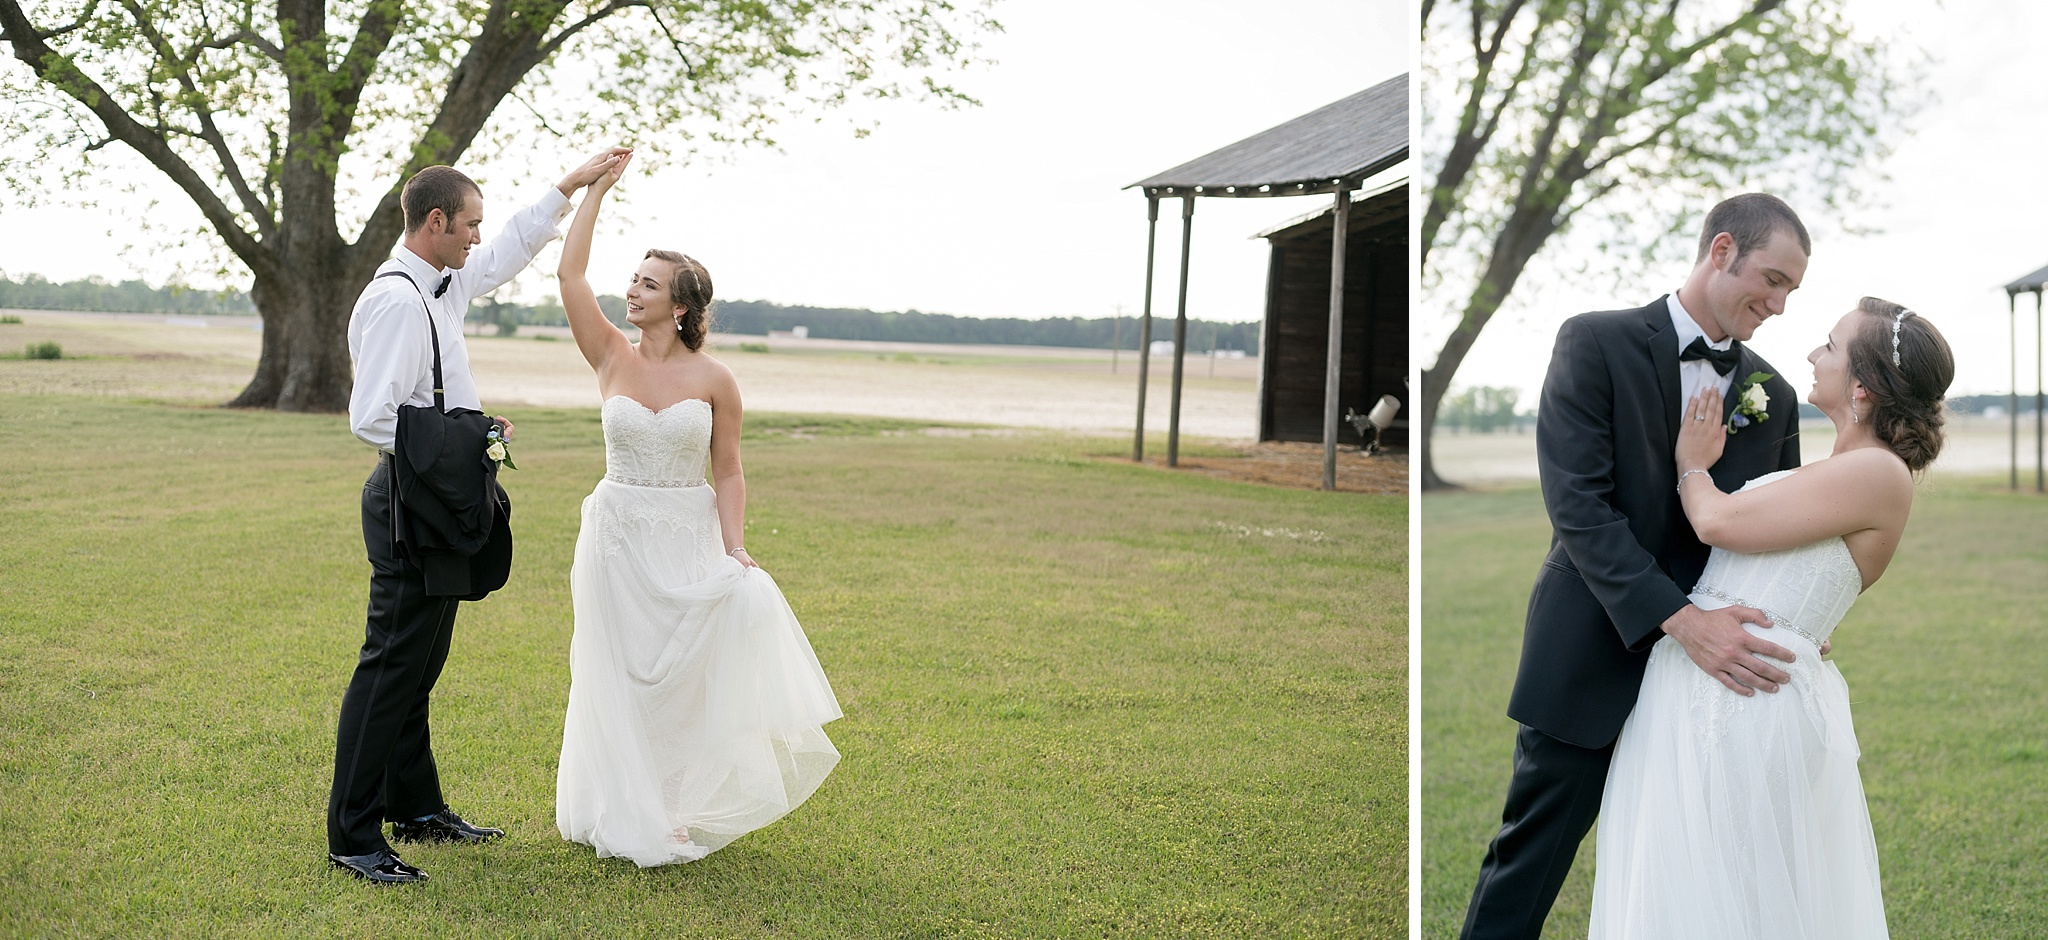 400-Saint-Andrews-Wedding-NC-Photographer-158.jpg